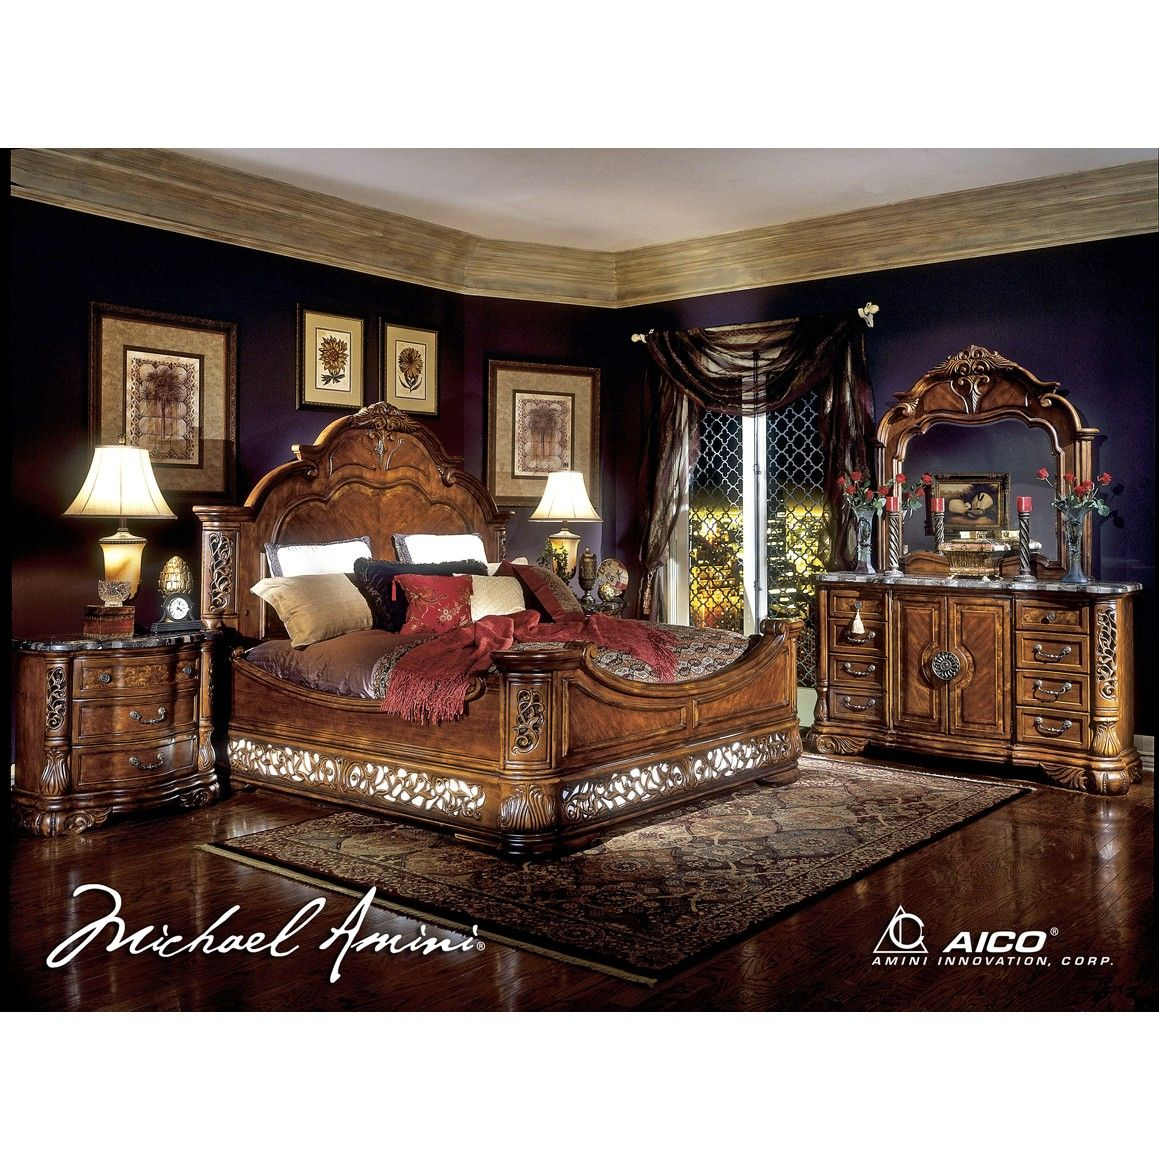 AICO Excelsior King Size Mansion Bedroom Set In Fruitwood Finish